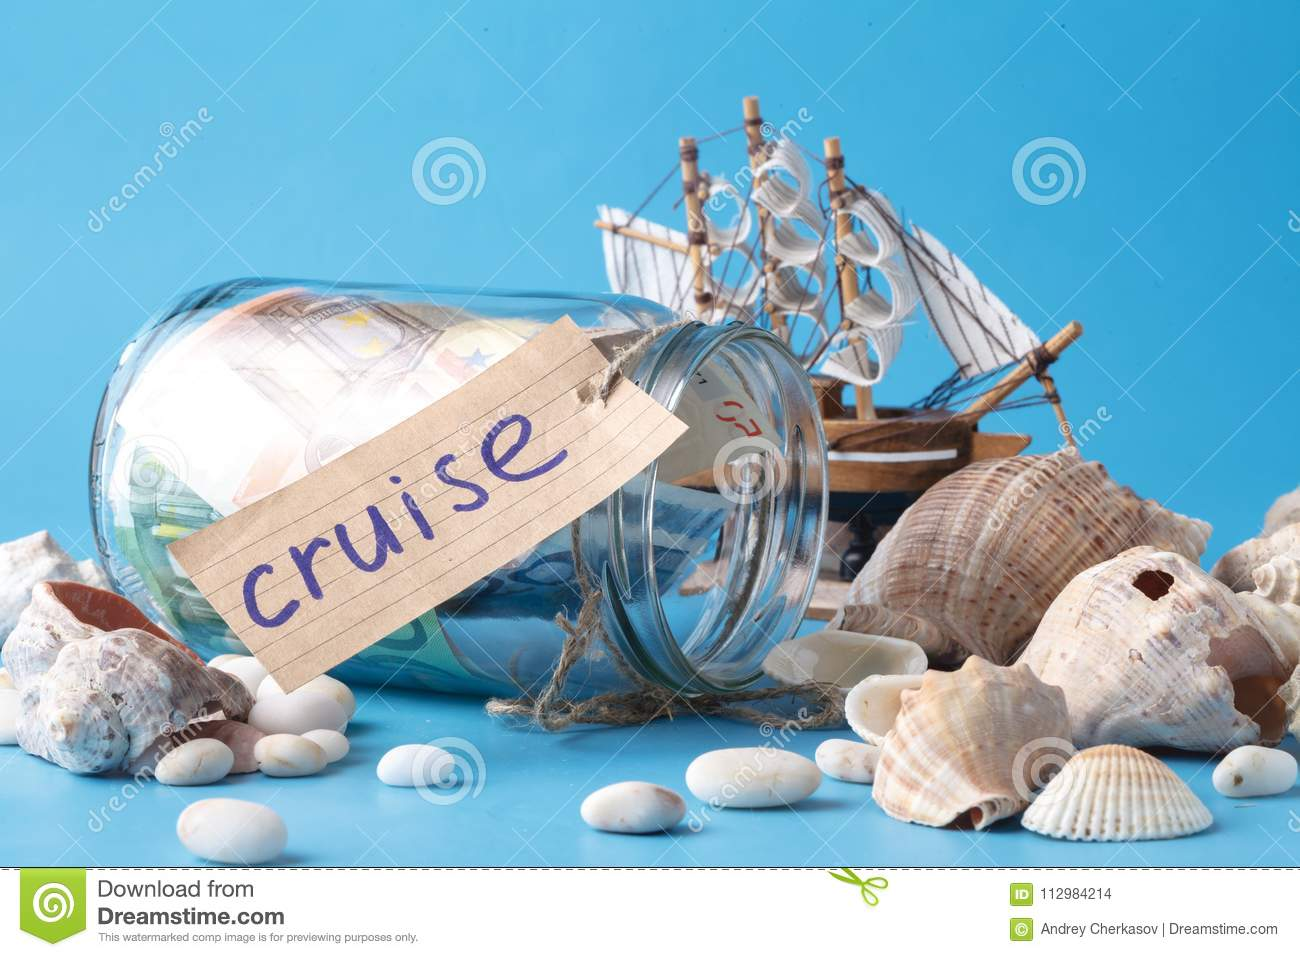 Sea travel in vacation concet with shell and ship